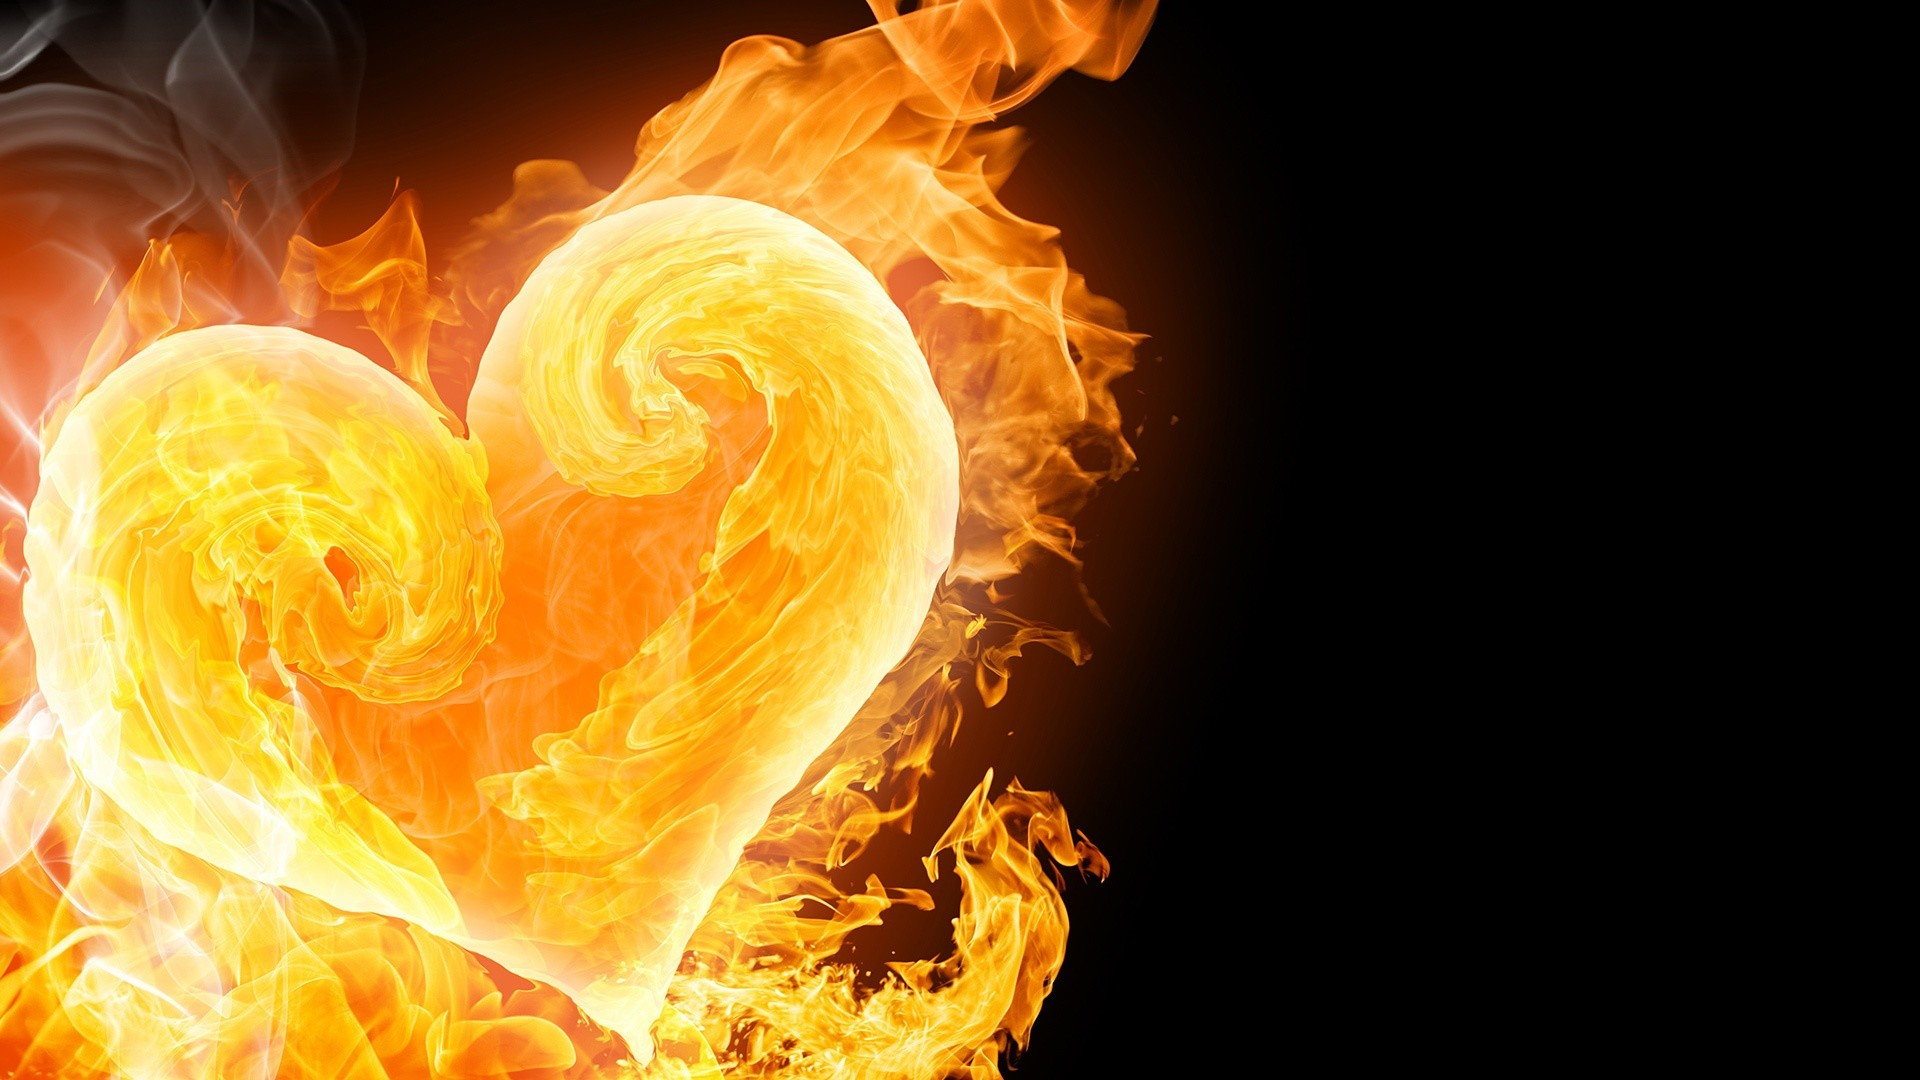 Res: 1920x1080, Collection of Fire Heart Wallpaper on HDWallpapers